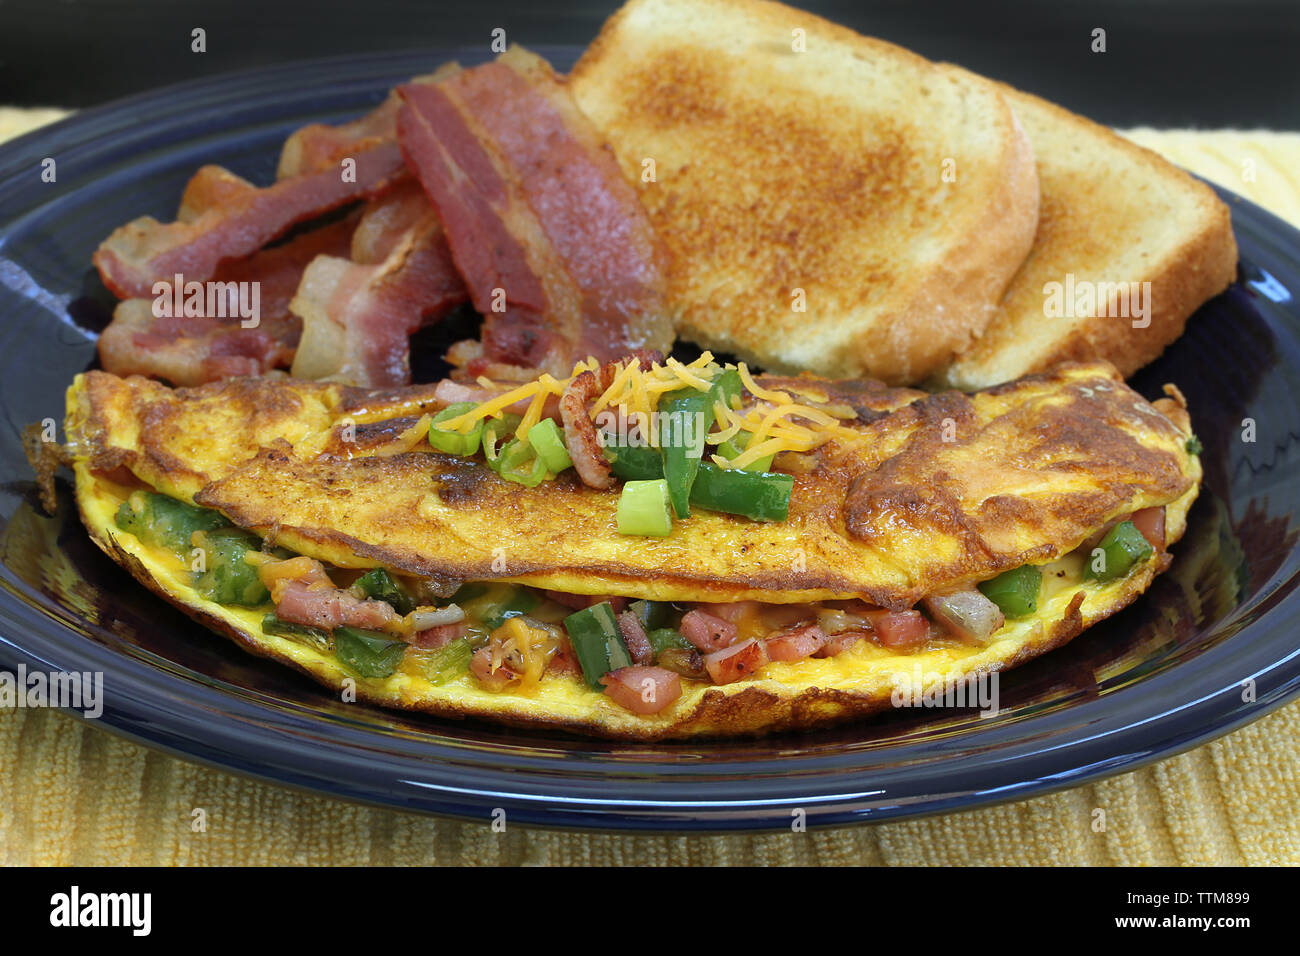 Macro view of a Western or Denver omelet with sides of bacon and toast.  Selective focus on omelet front. - Stock Image